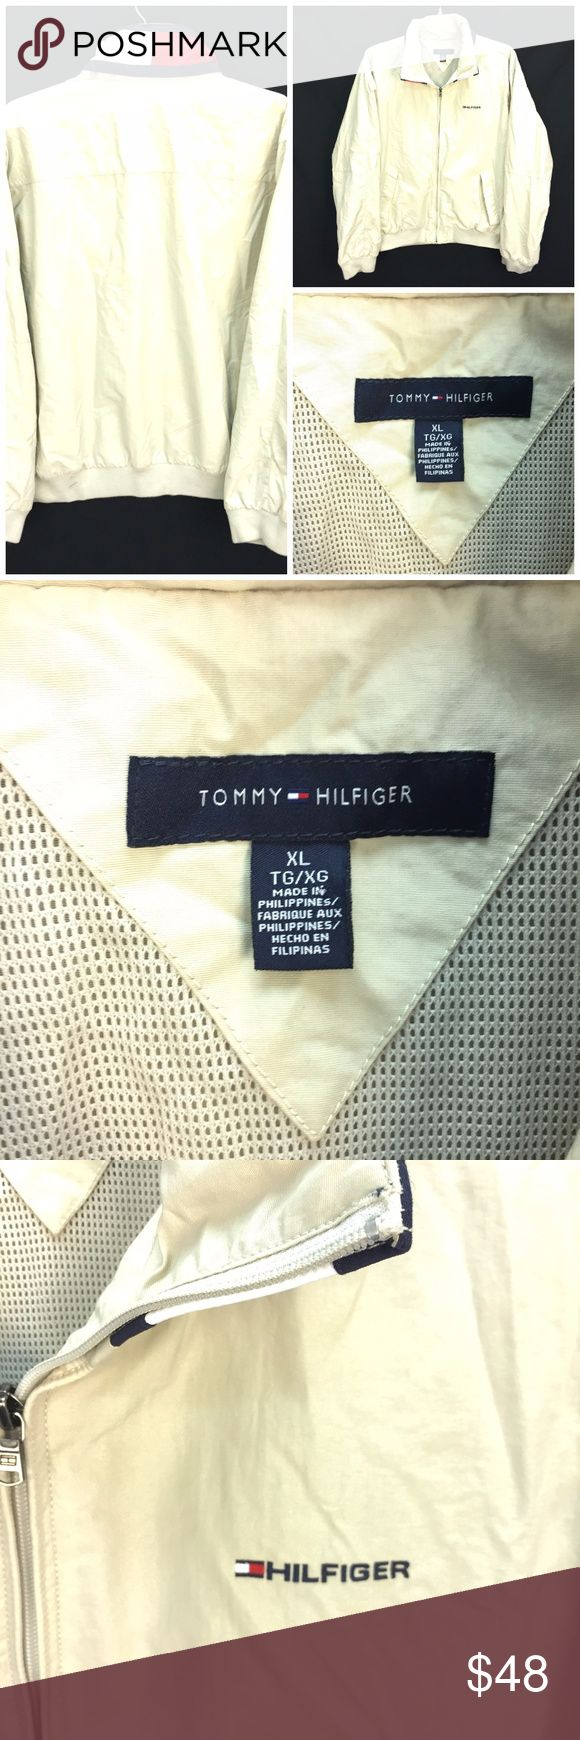 "Tommy Hilfiger Yacht Windbreaker Sz XL Tan Hooded *  Tommy Hilfiger full zip sailing/yacht windbreaker/jacket; size XL  *Features mesh lining; logo on chest; TH flag logo wraps around collar; which holds concealed hood  * Please see below for measurements; all measurements taken with garment lying flat.  Please see all photos for complete condition assessment.  Shoulder to Shoulder: 22"" Armpit to Armpit : 27"" Waist: 24"" Overall Length: 25"" Sleeve: 27"" Item Number: 2704 R Tommy Hilfiger…"